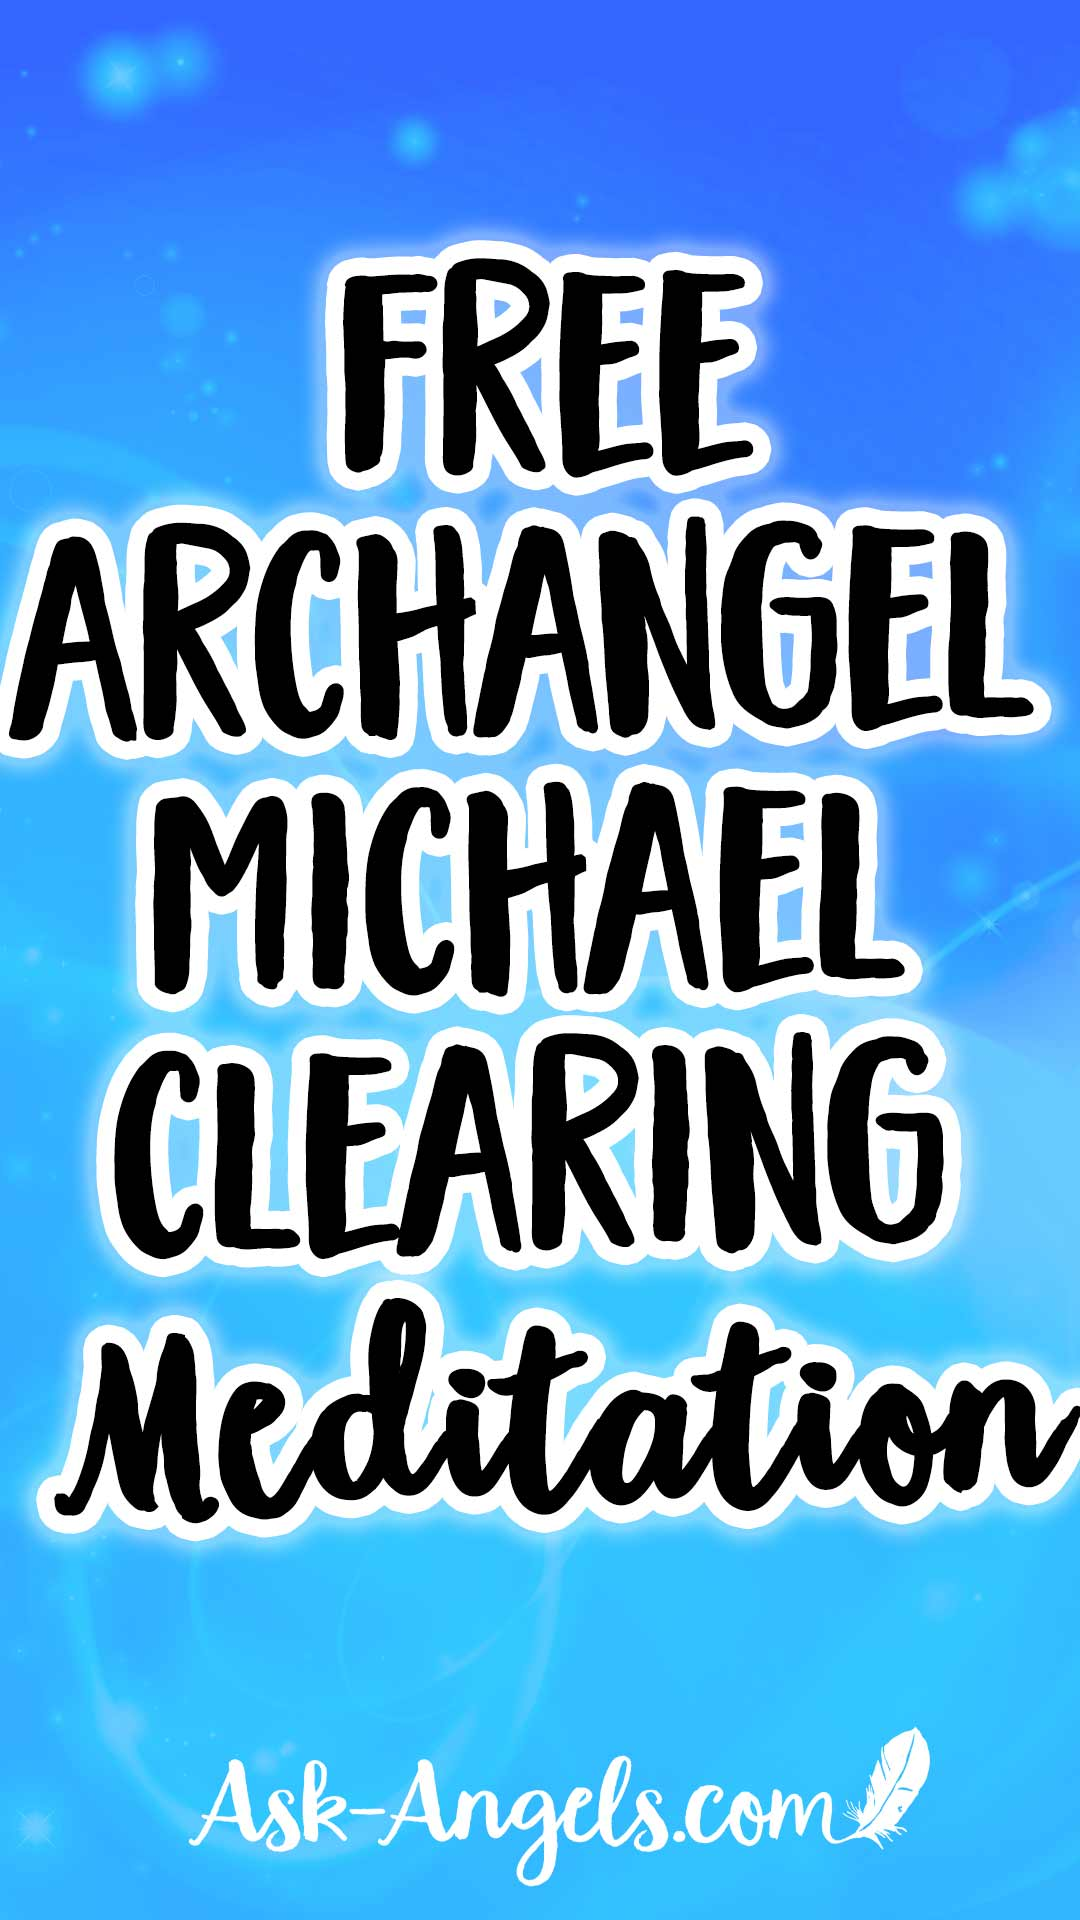 Free Archangel Michael Clearing Meditation